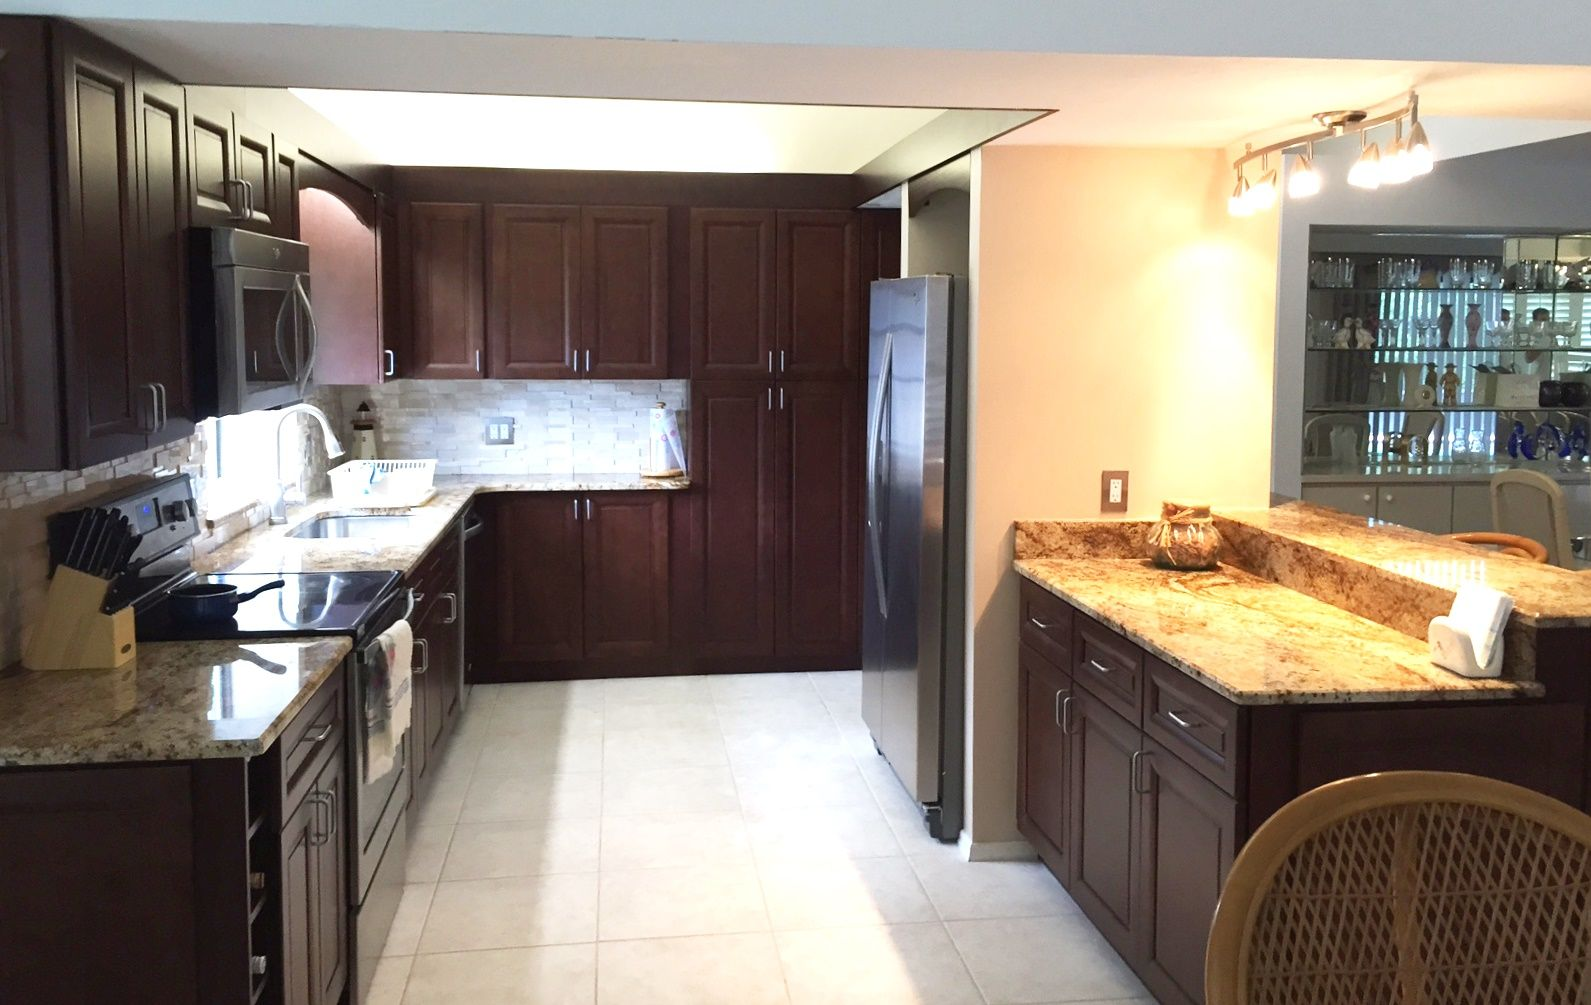 A Recent Contemporary Kitchen Remodel Project By Alliance Group Using Adornus  Cabinetry. See More Project